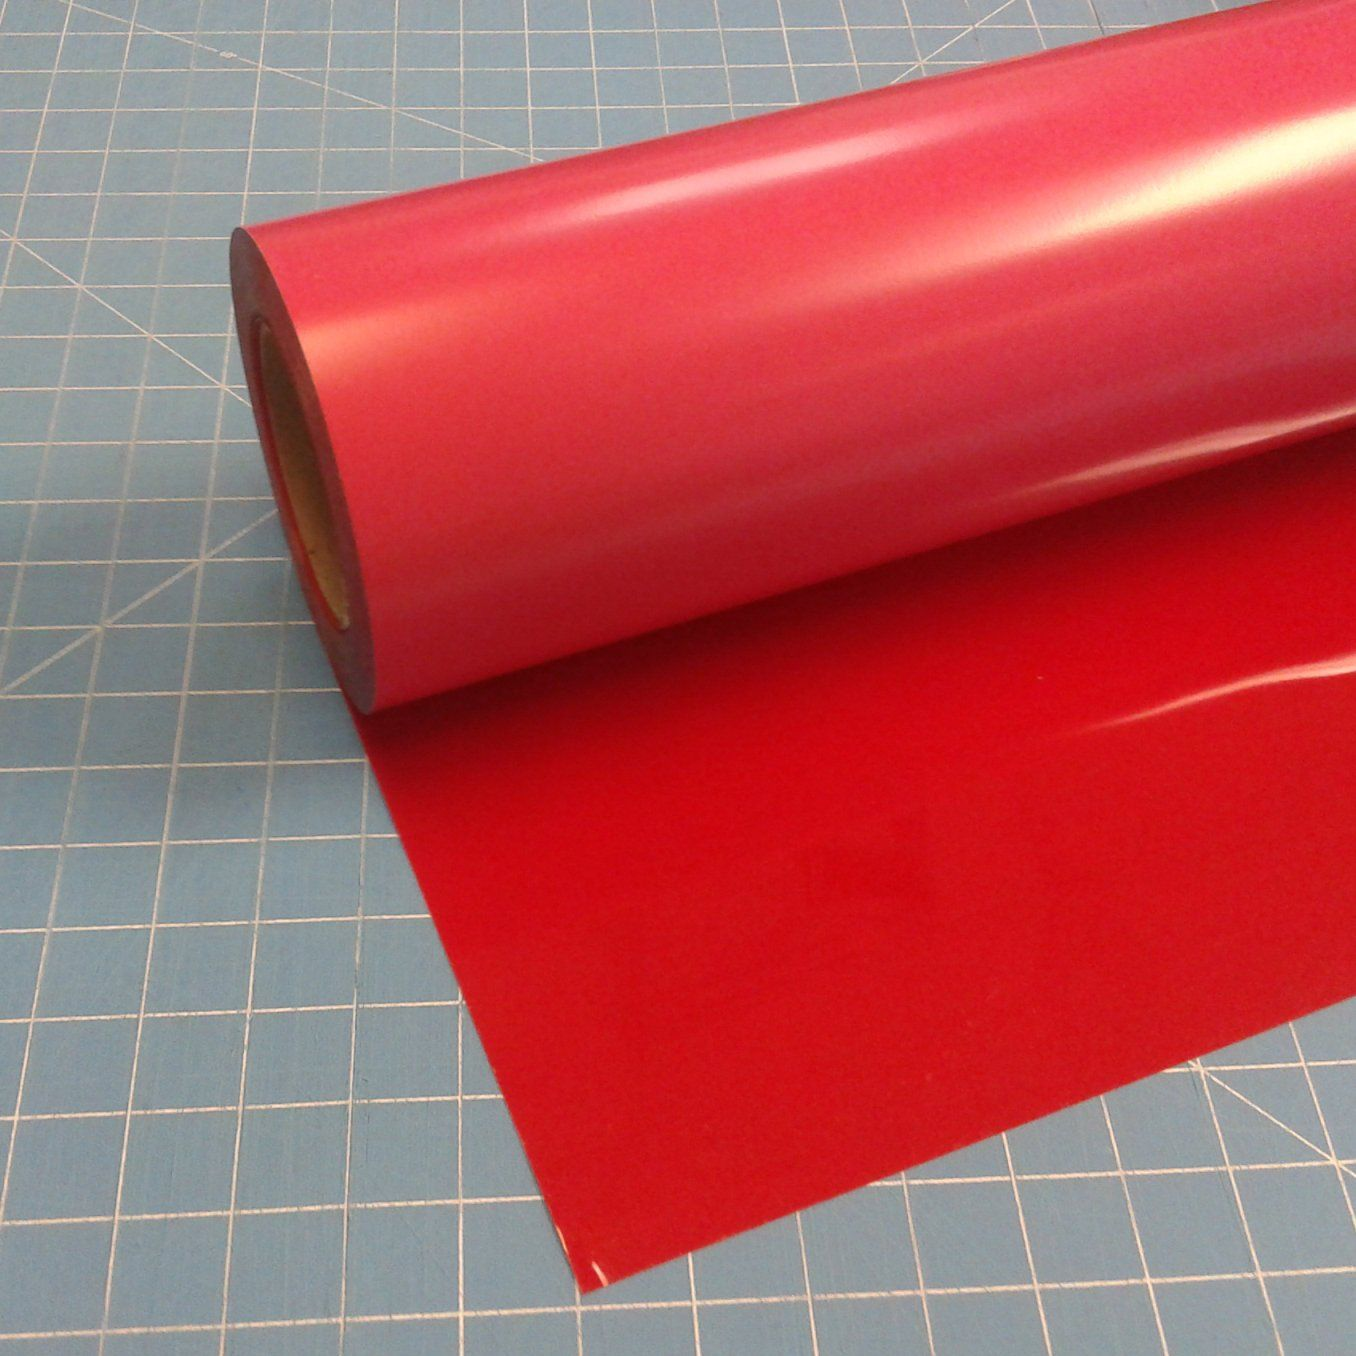 Siser Easyweed Stretch Red 15 X 15 Iron On Heat Transfer Vinyl Roll Coaches World Want Additional Info Click Siser Easyweed Vinyl Rolls Vinyl Printer Paper